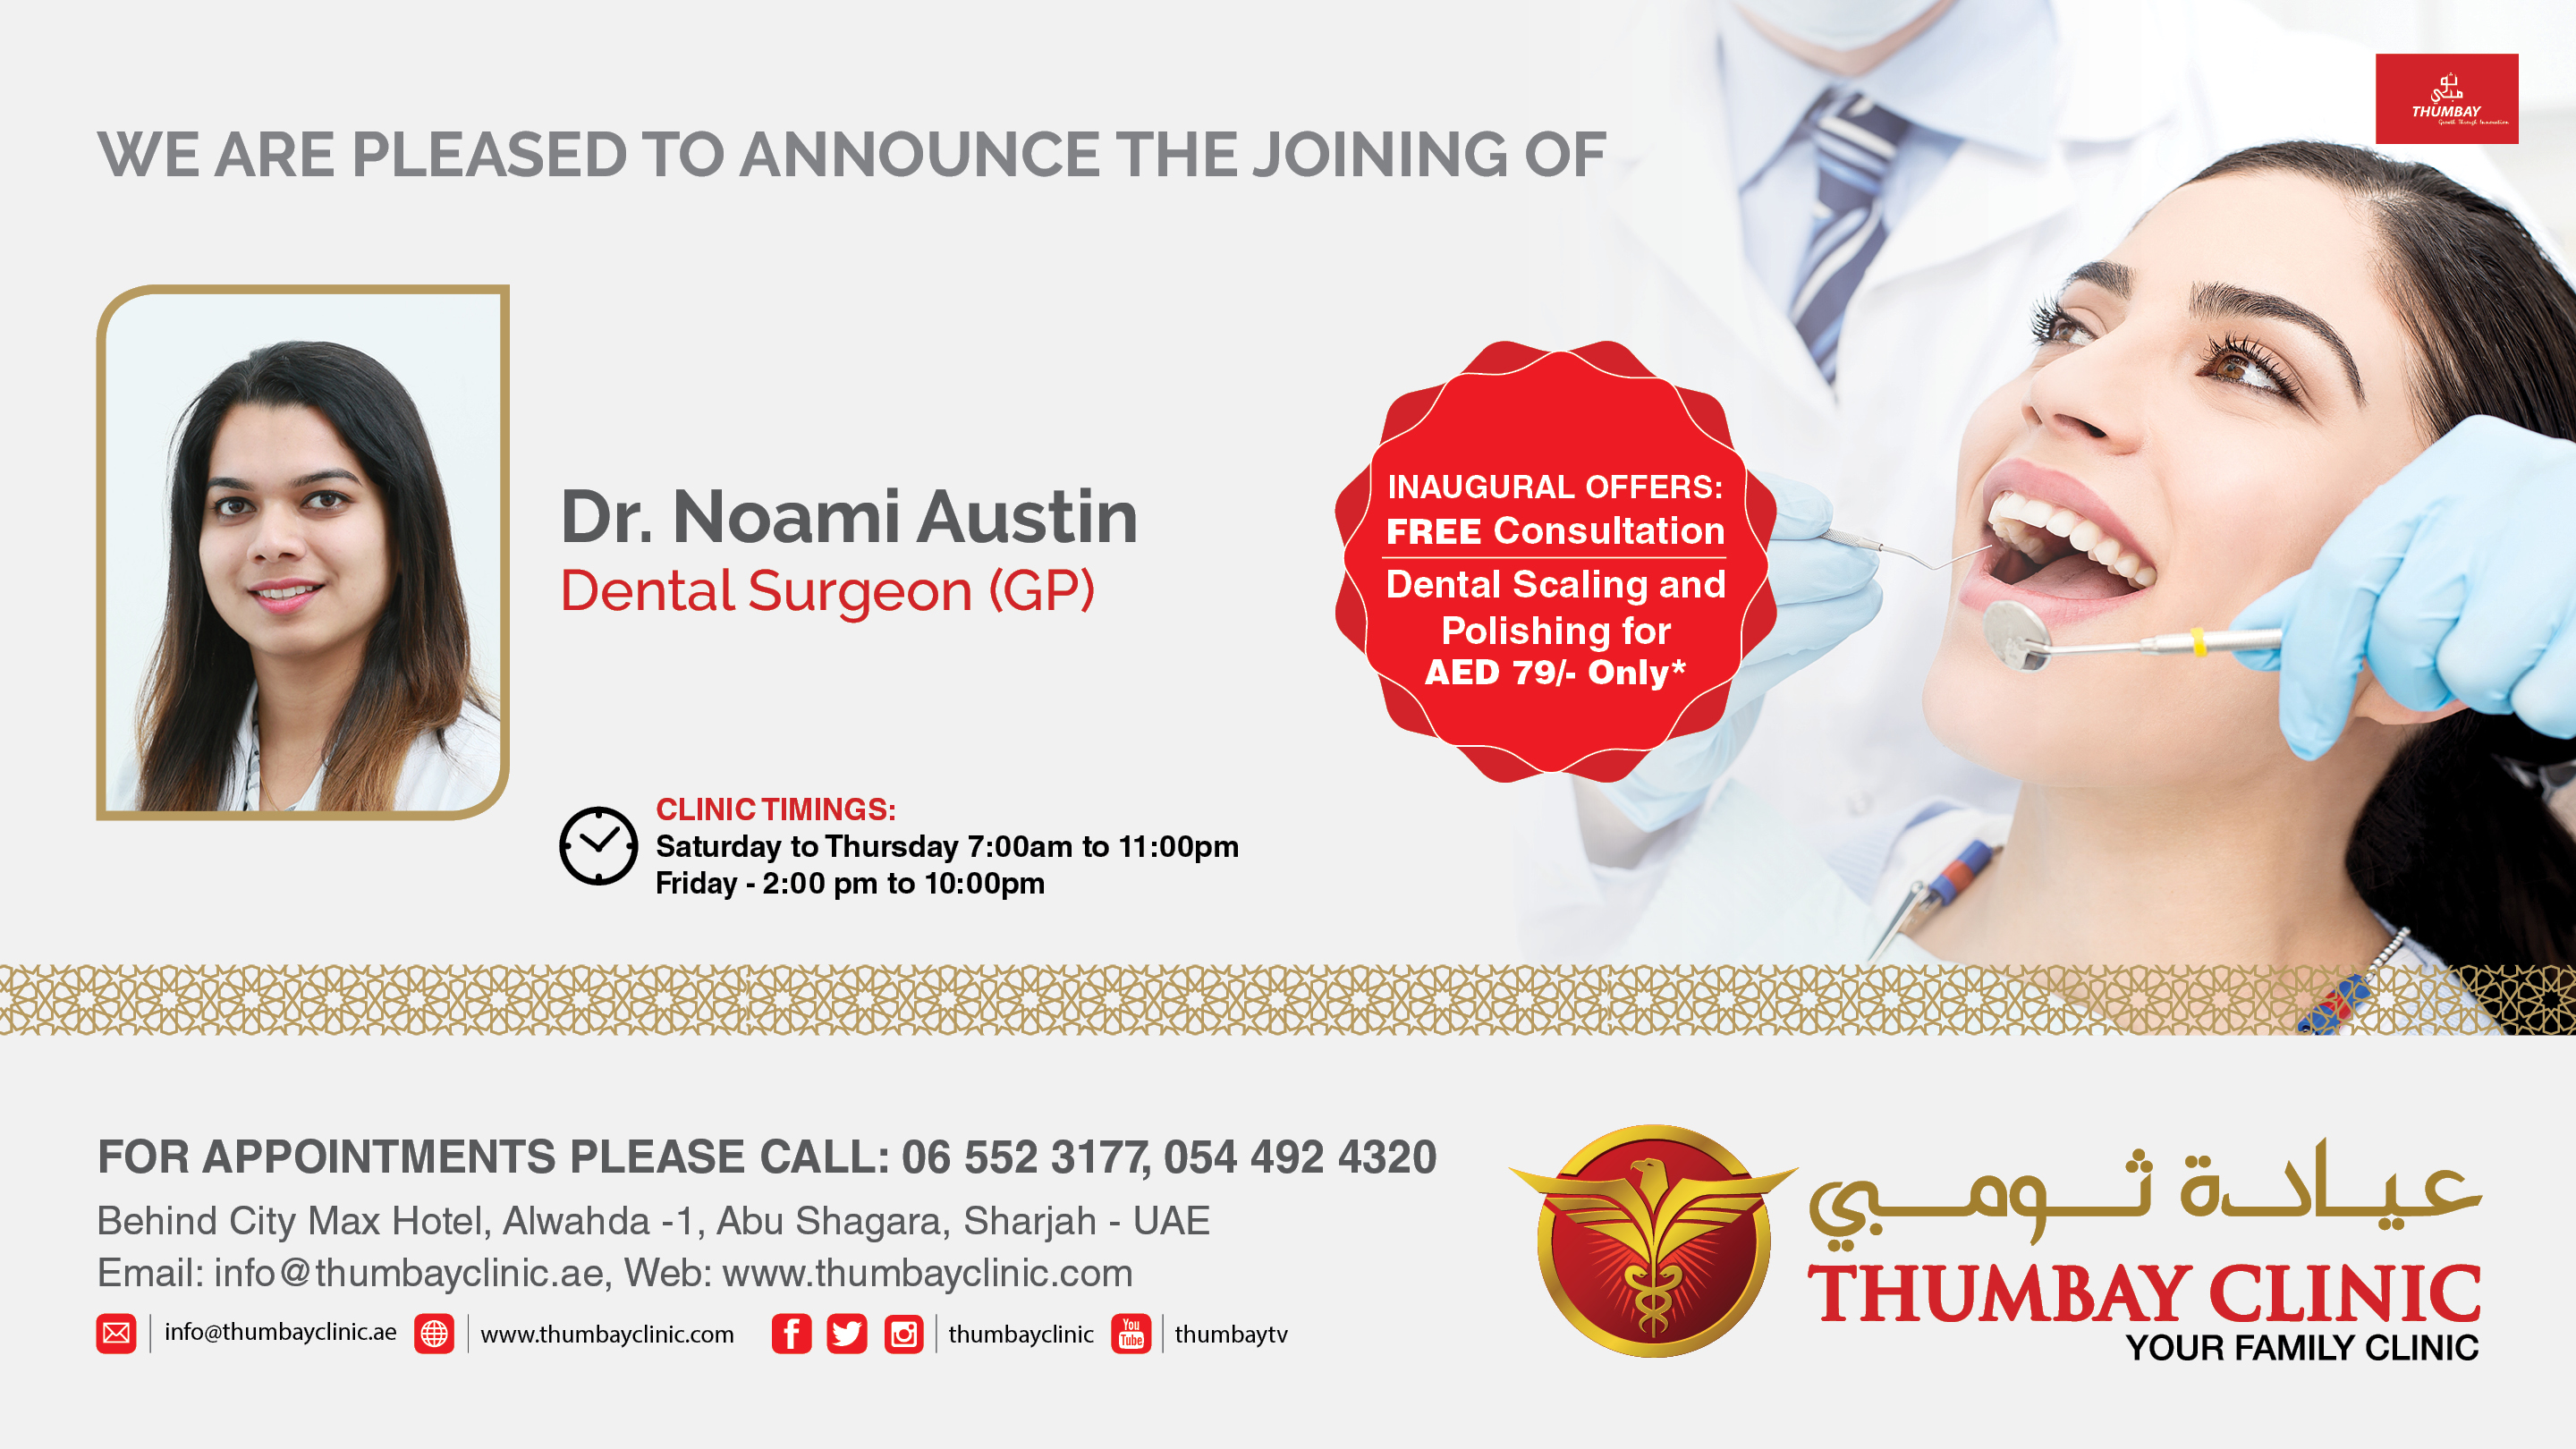 Thumbay Clinic – Your Family Clinic | UAE